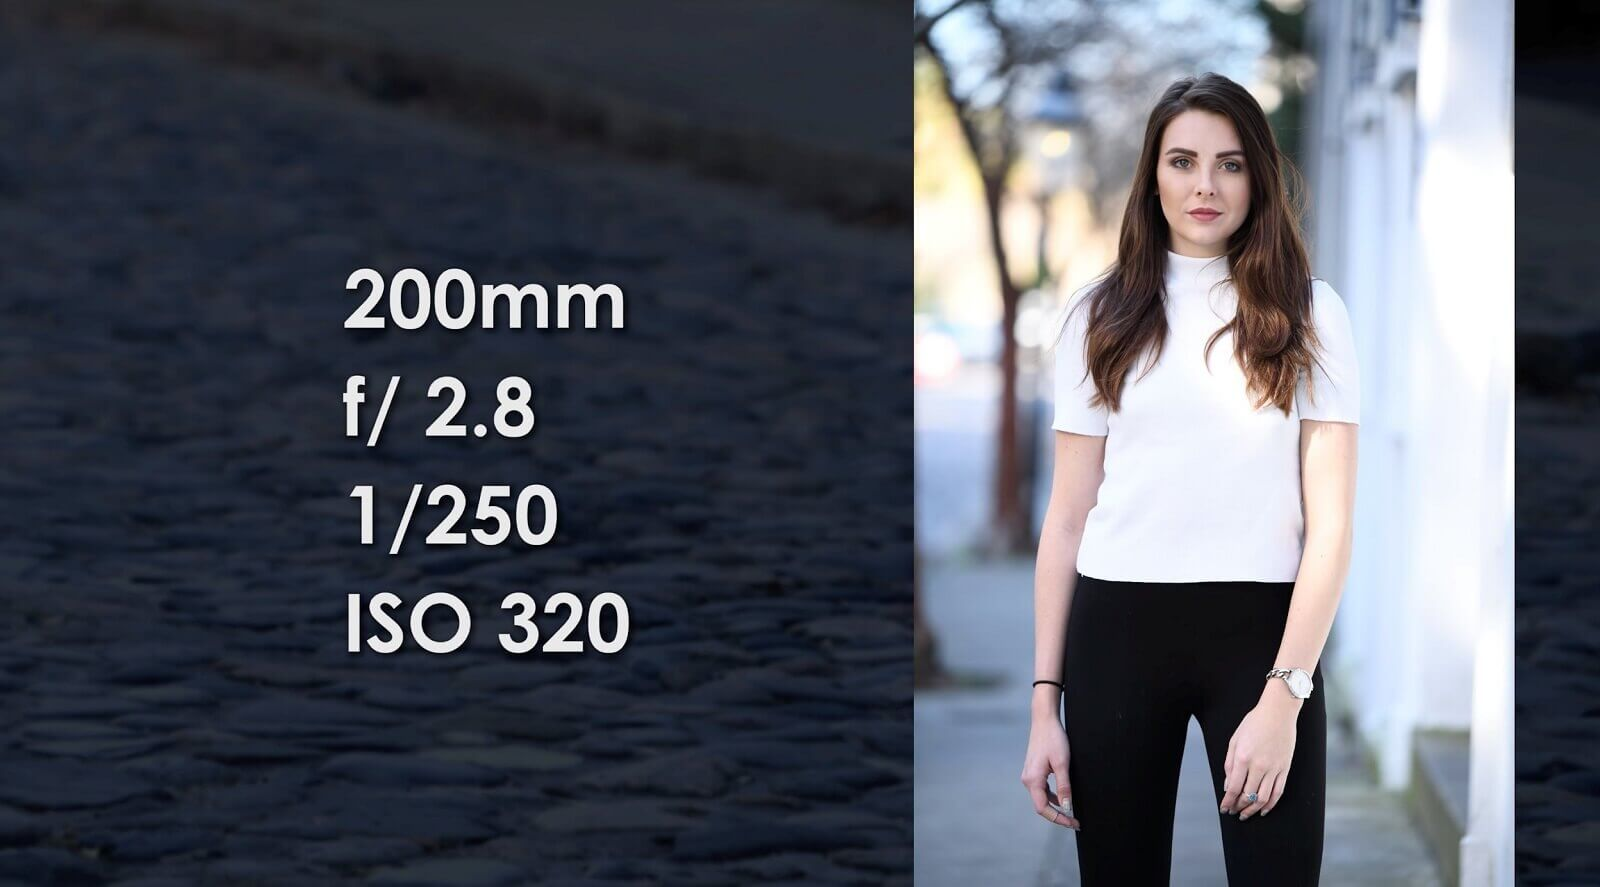 Best Lens for Full Body Portraits - 200mm Portrait Photo by Patrick Hall